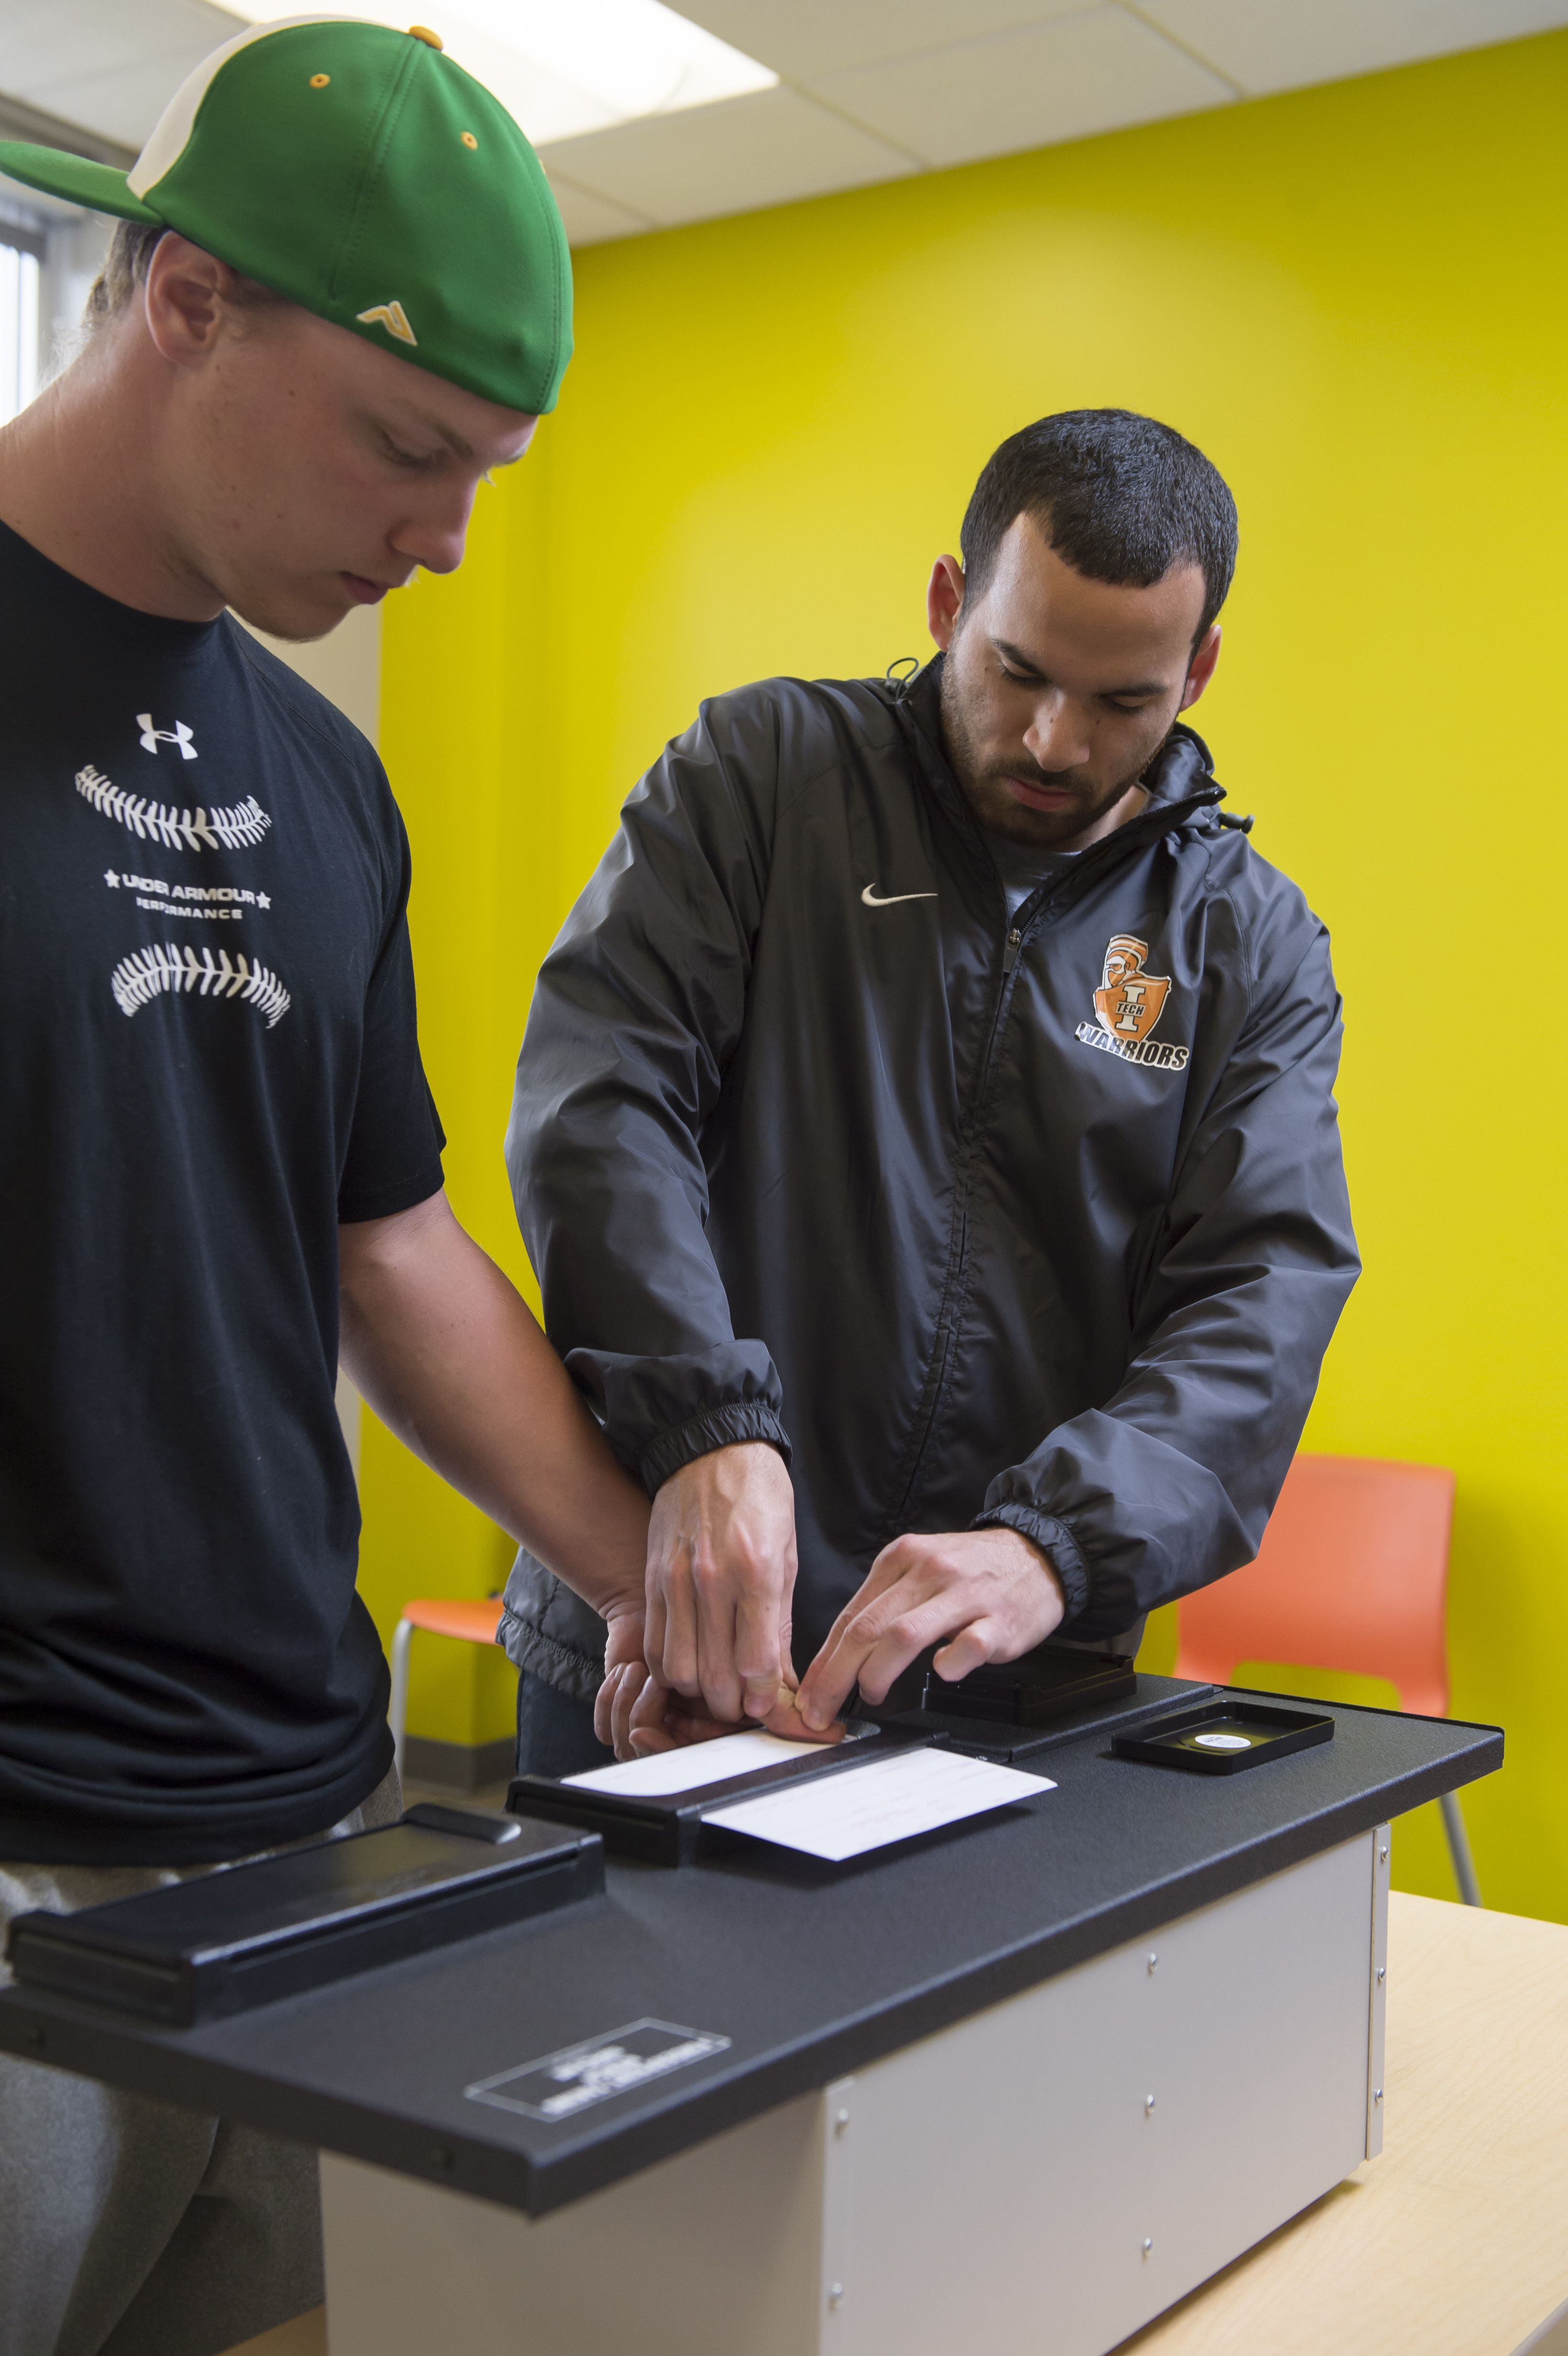 Fingerprinting In A Criminal Justice Class